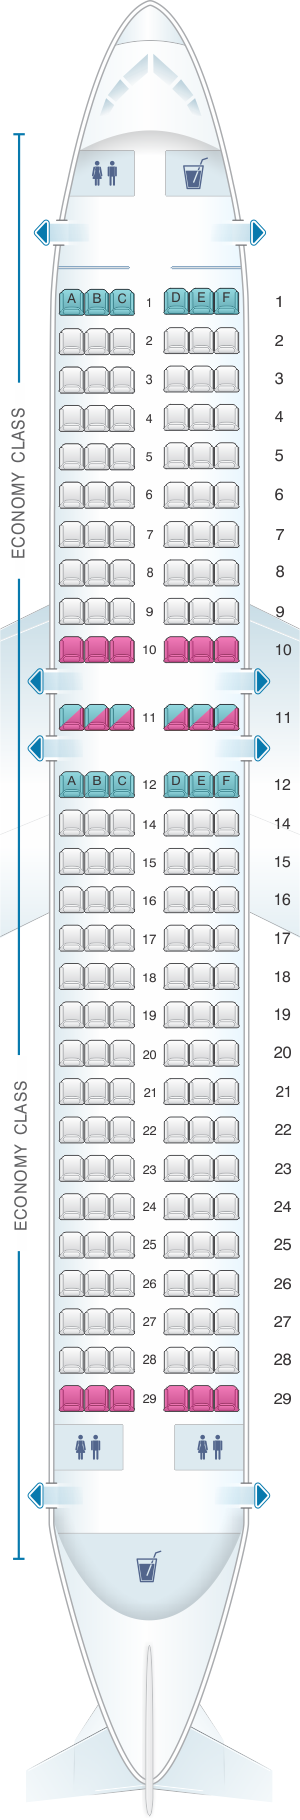 Seat map for Scandinavian Airlines (SAS) Airbus A320